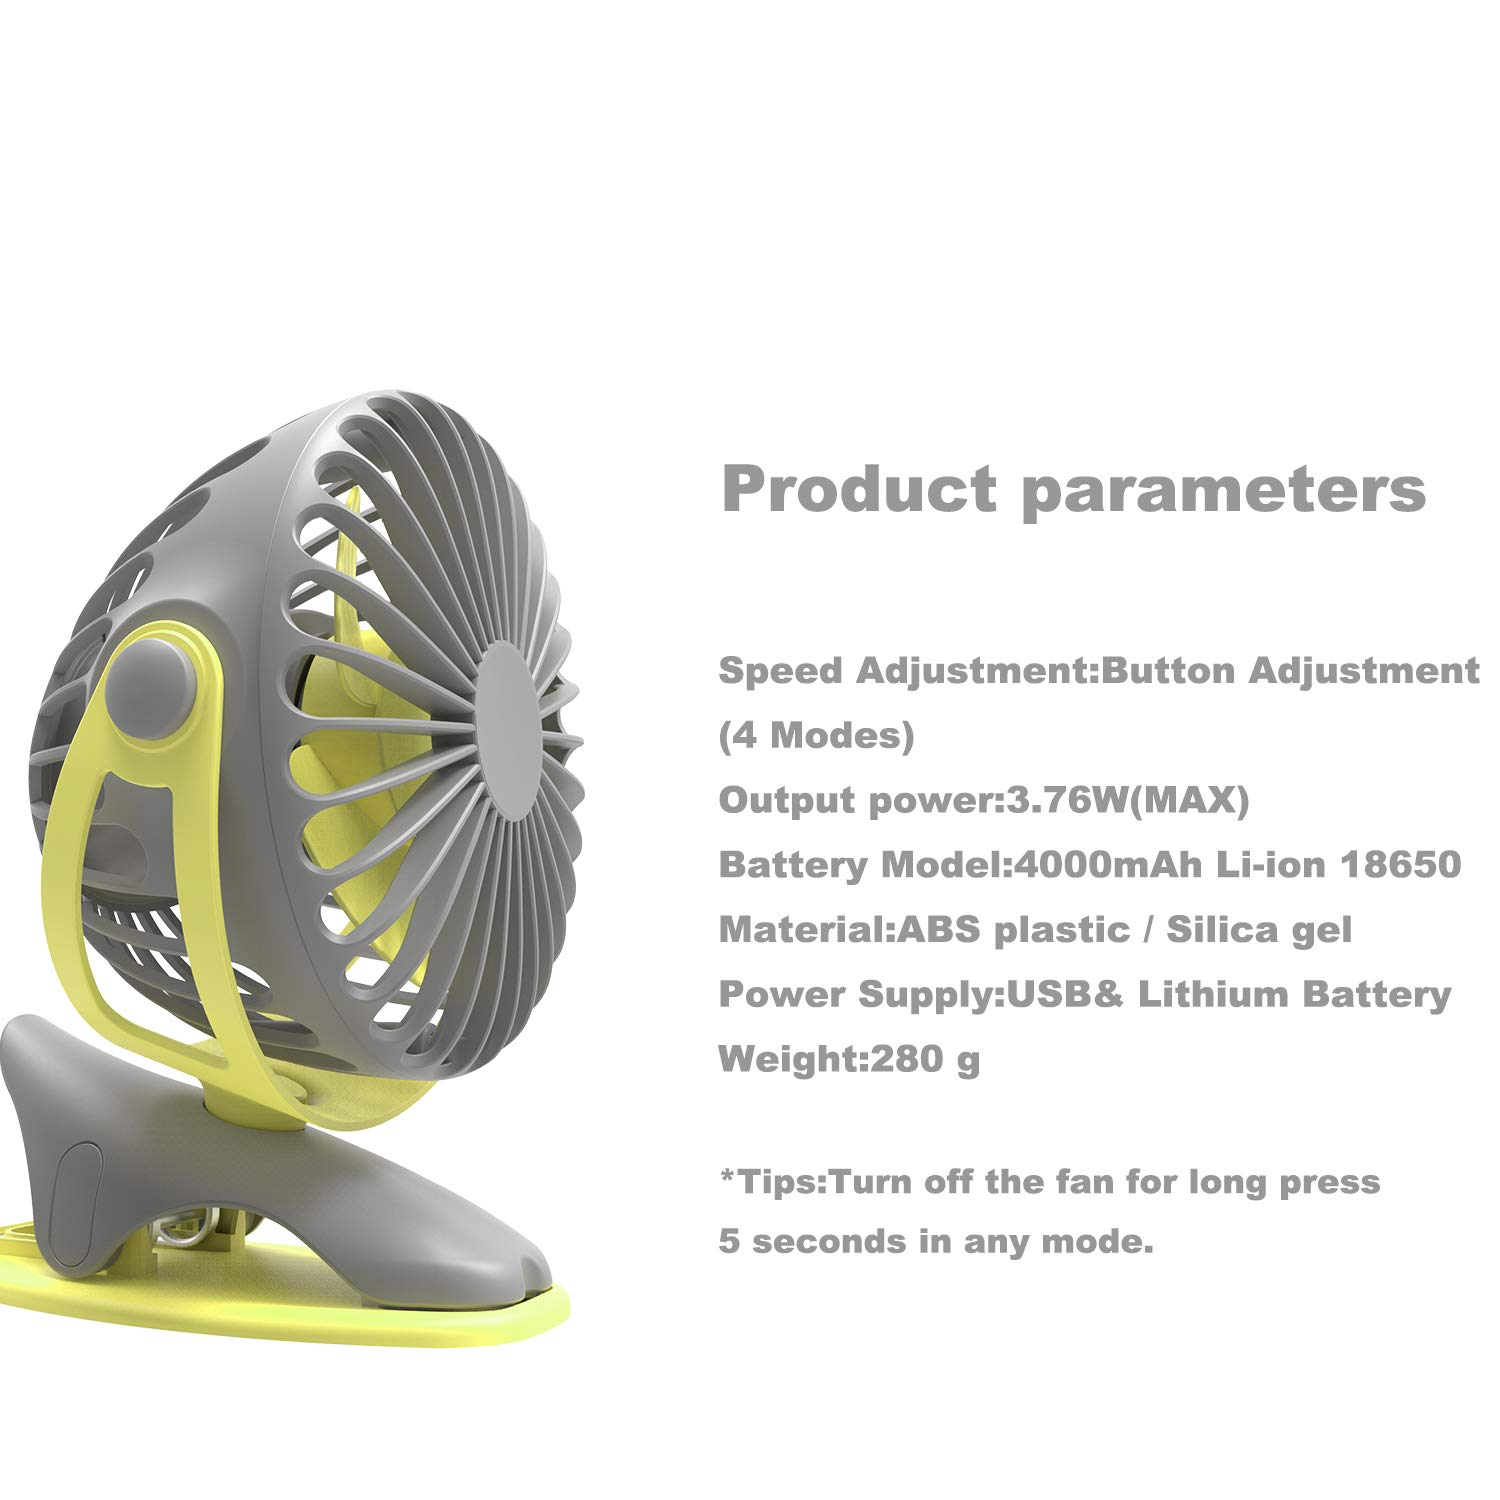 Amazon.com: upHere Desk Fan, Rechargeable Battery Operated Clip on Fan with 4 Mode,360 Degree Rotation Portable USB Fan, Strong Wind Personal Fan for ...